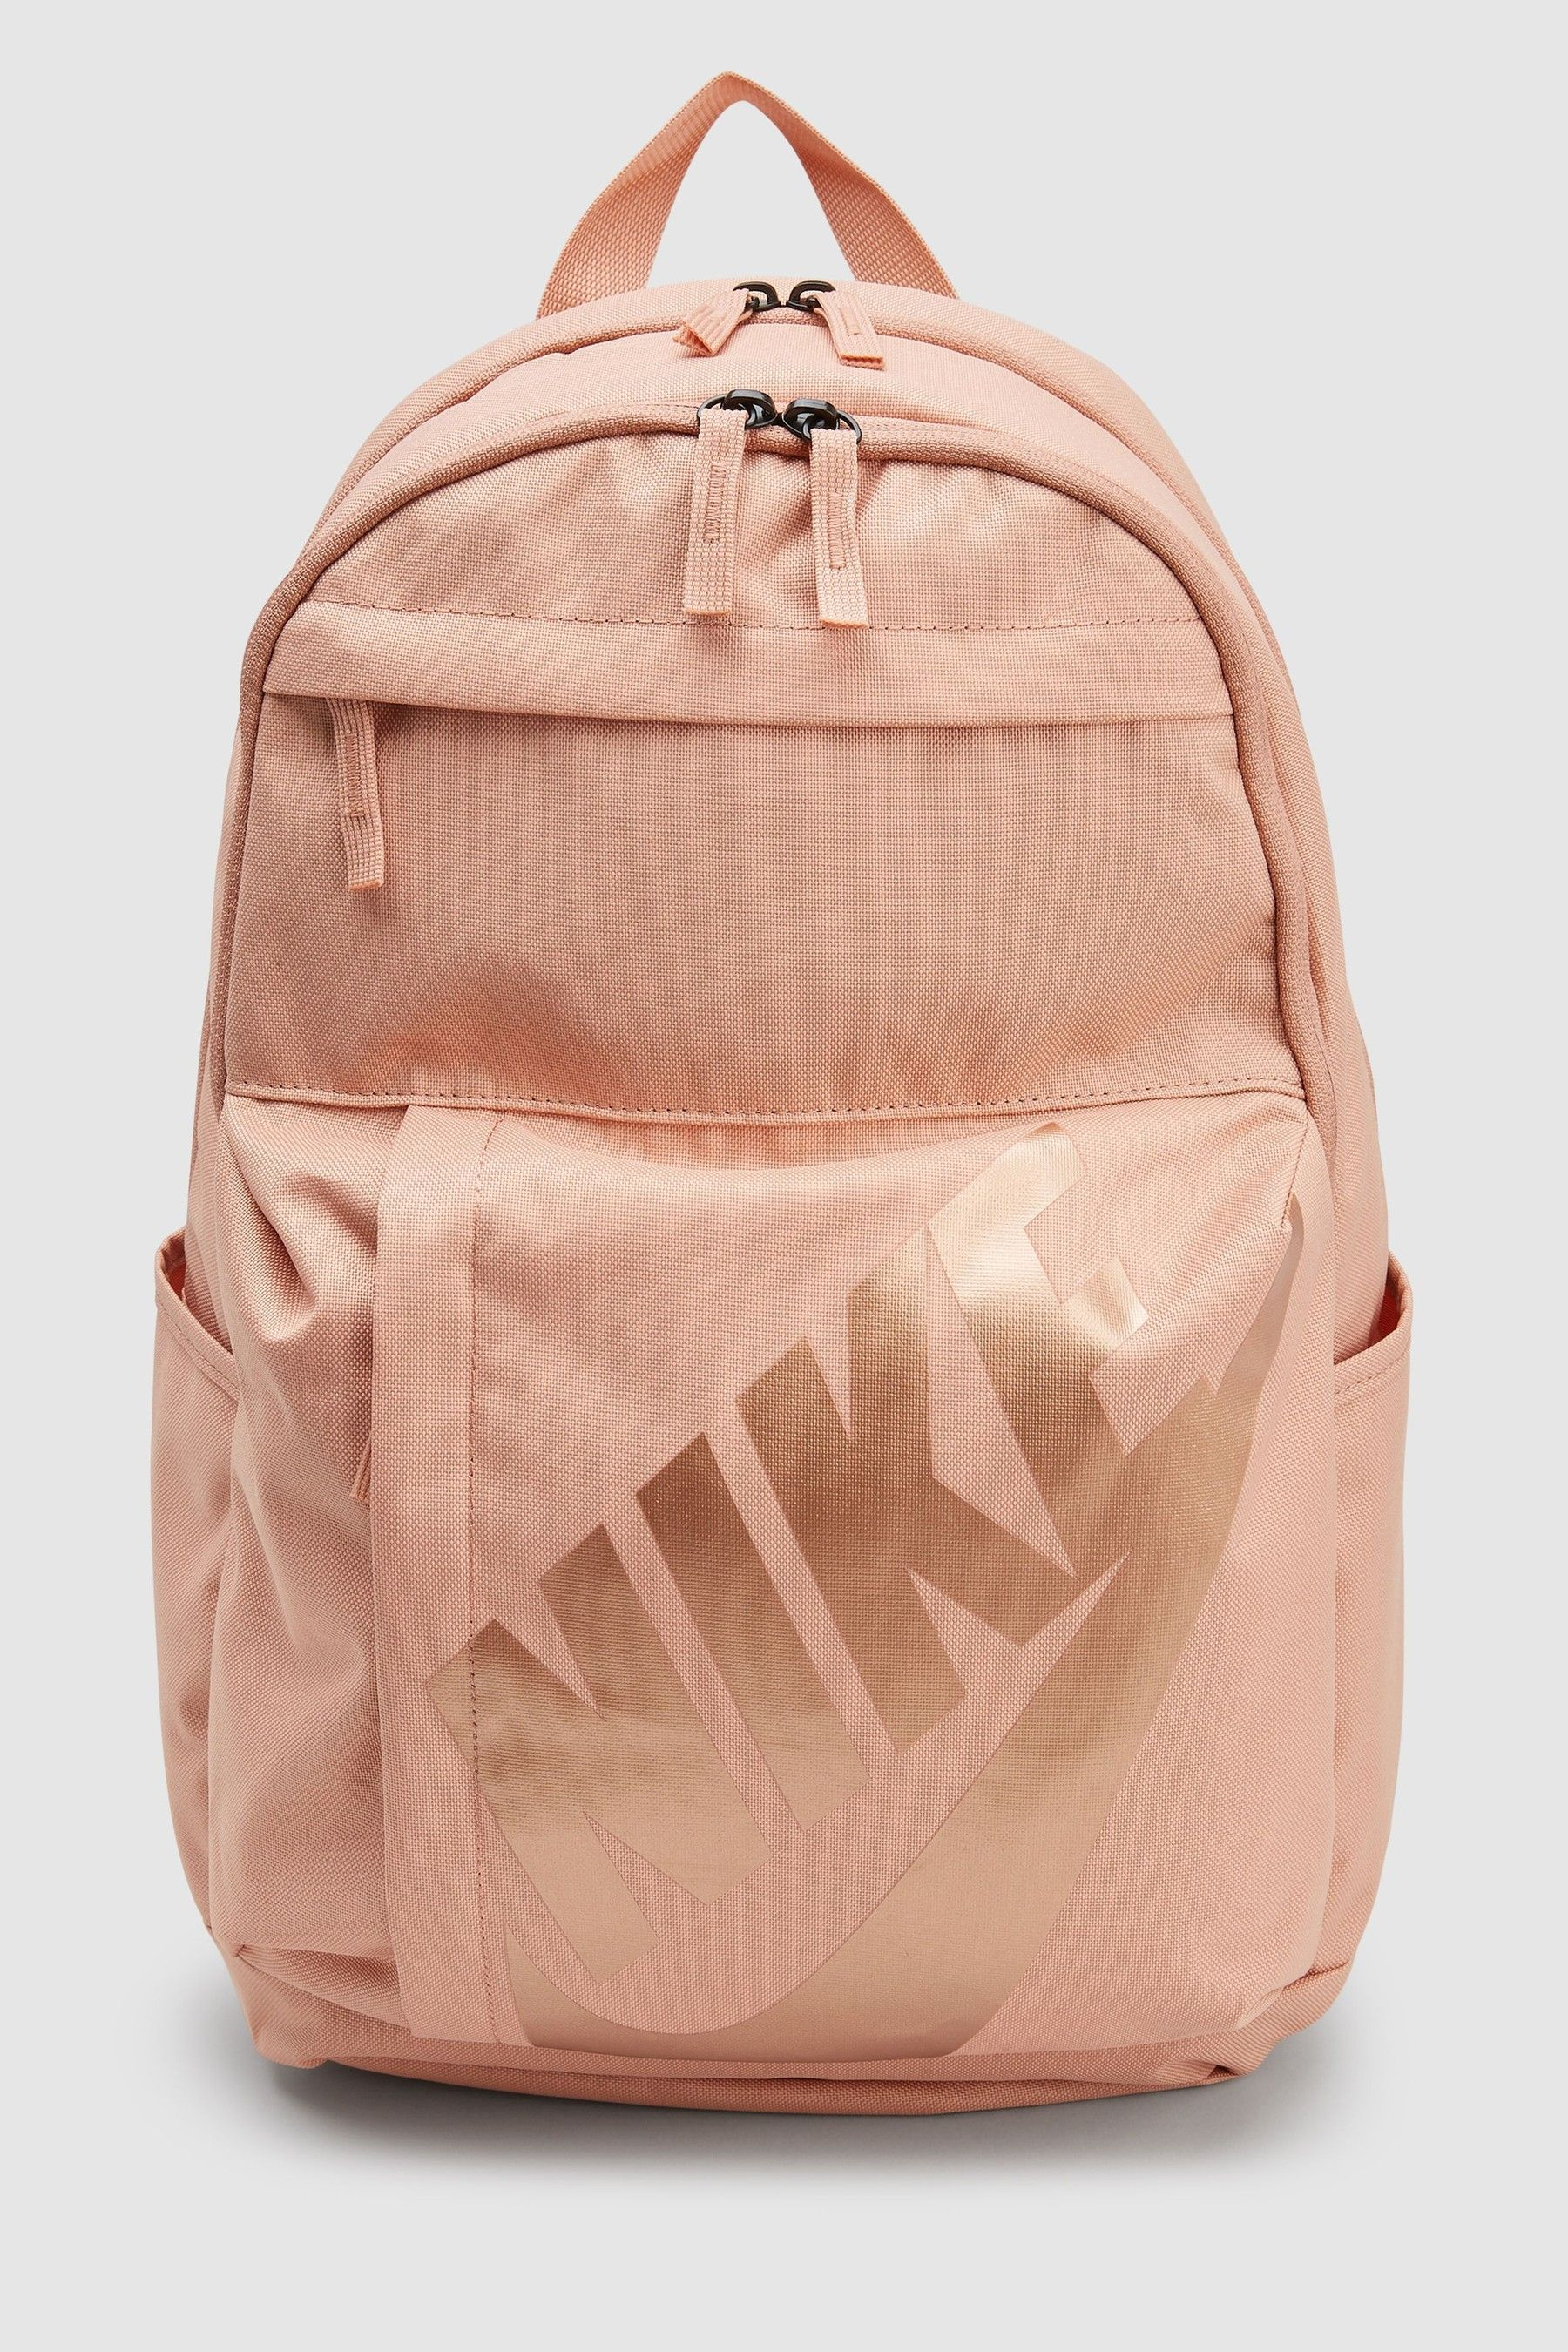 amazon newest collection casual shoes Girls Nike Rose Gold Elemental Backpack - Gold | Products in ...